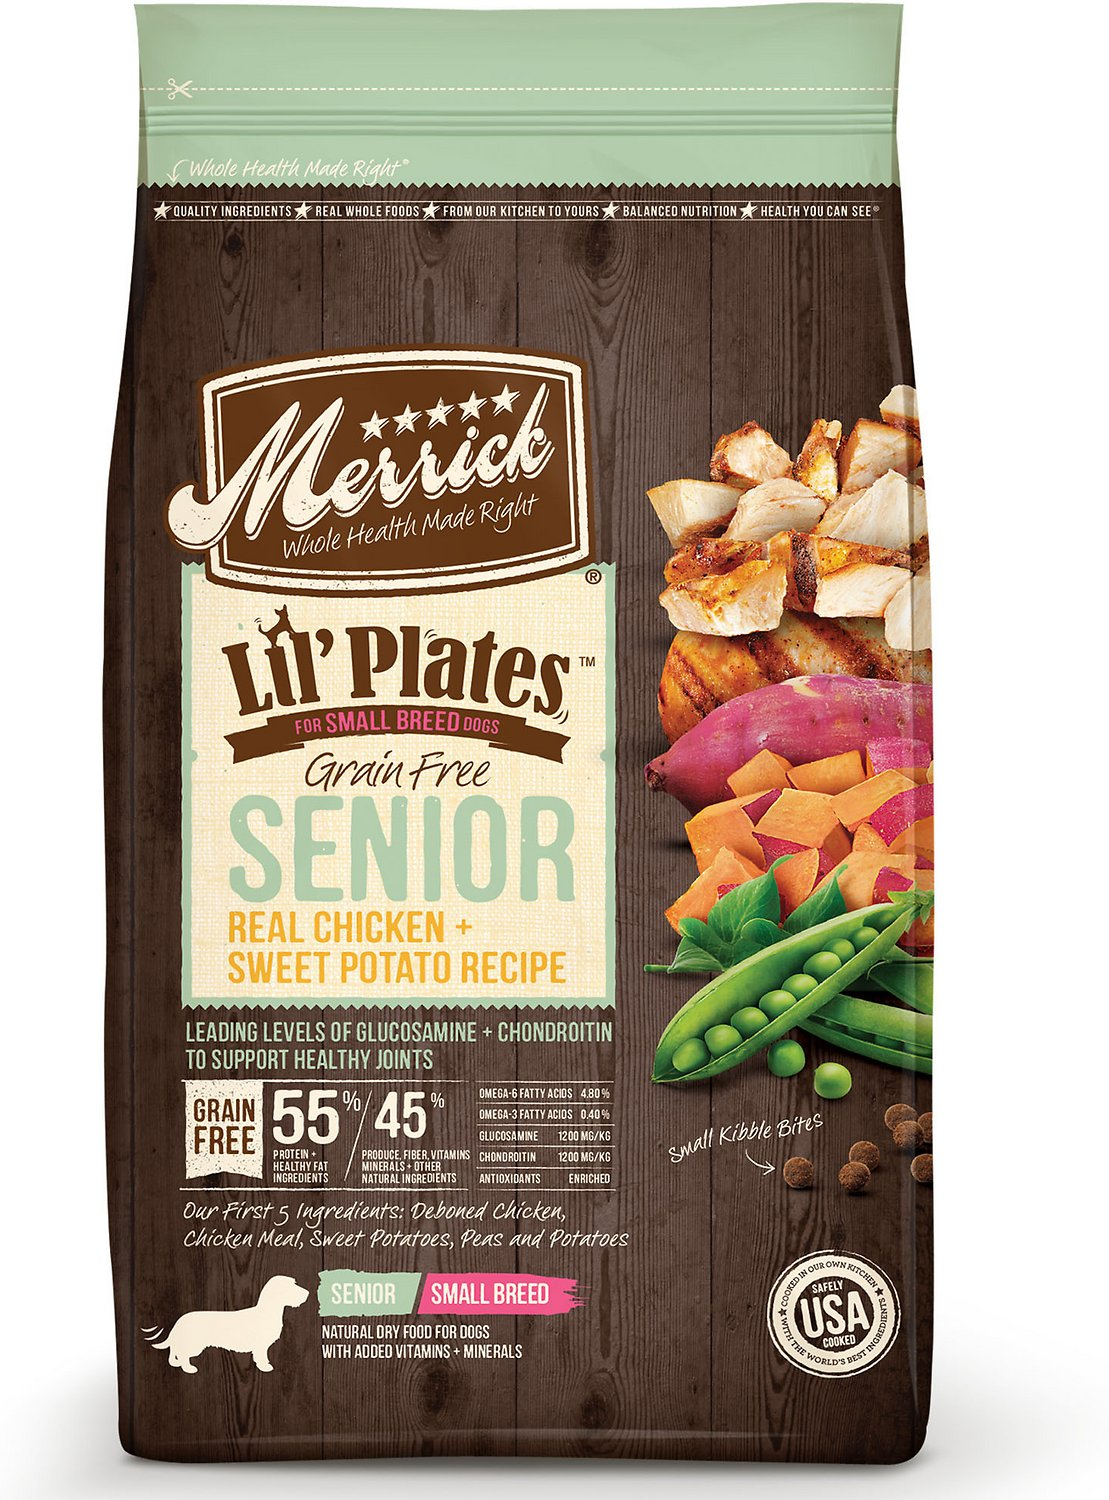 Merrick Lil' Plates Grain-Free Real Chicken & Sweet Potato Senior Small Breed Dry Dog Food Image